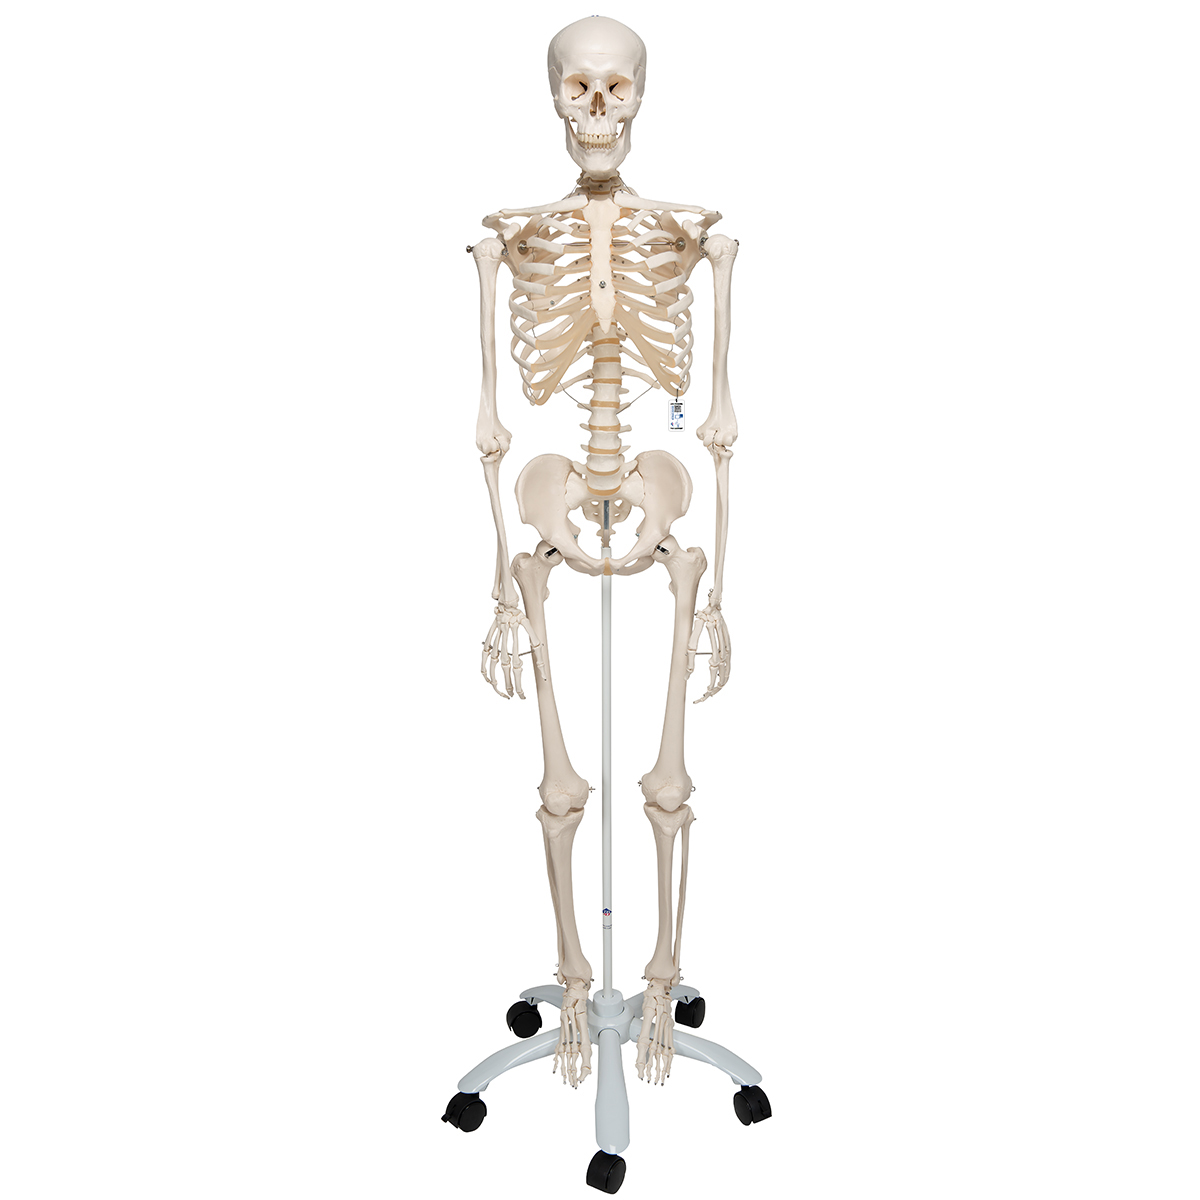 Human Skeleton Model | Skeleton for Anatomy | Plastic Skeleton Model